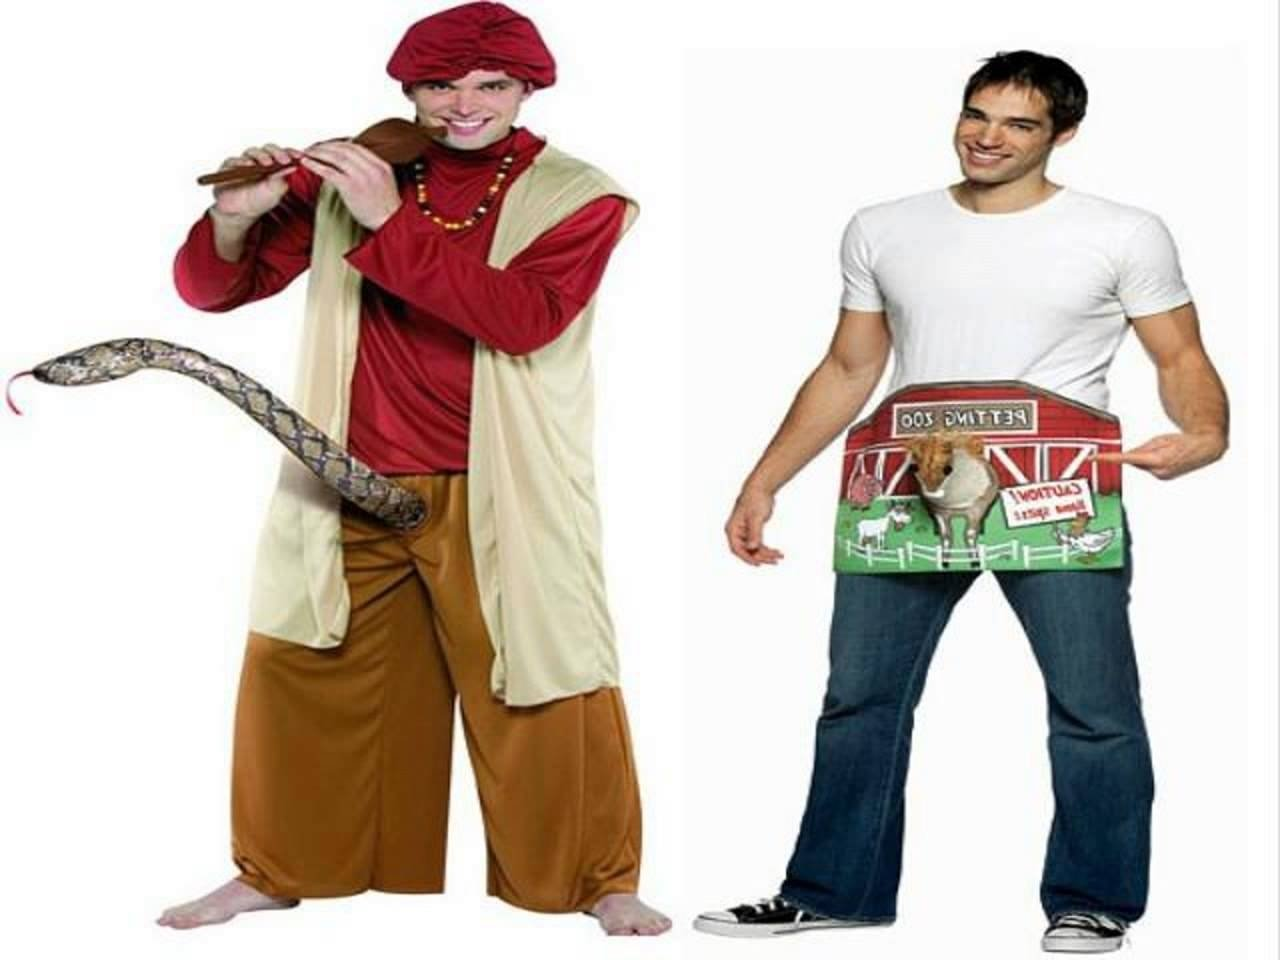 10 Pretty Best Male Halloween Costume Ideas full hd amazing halloween costumes for men women androids pics of 2020